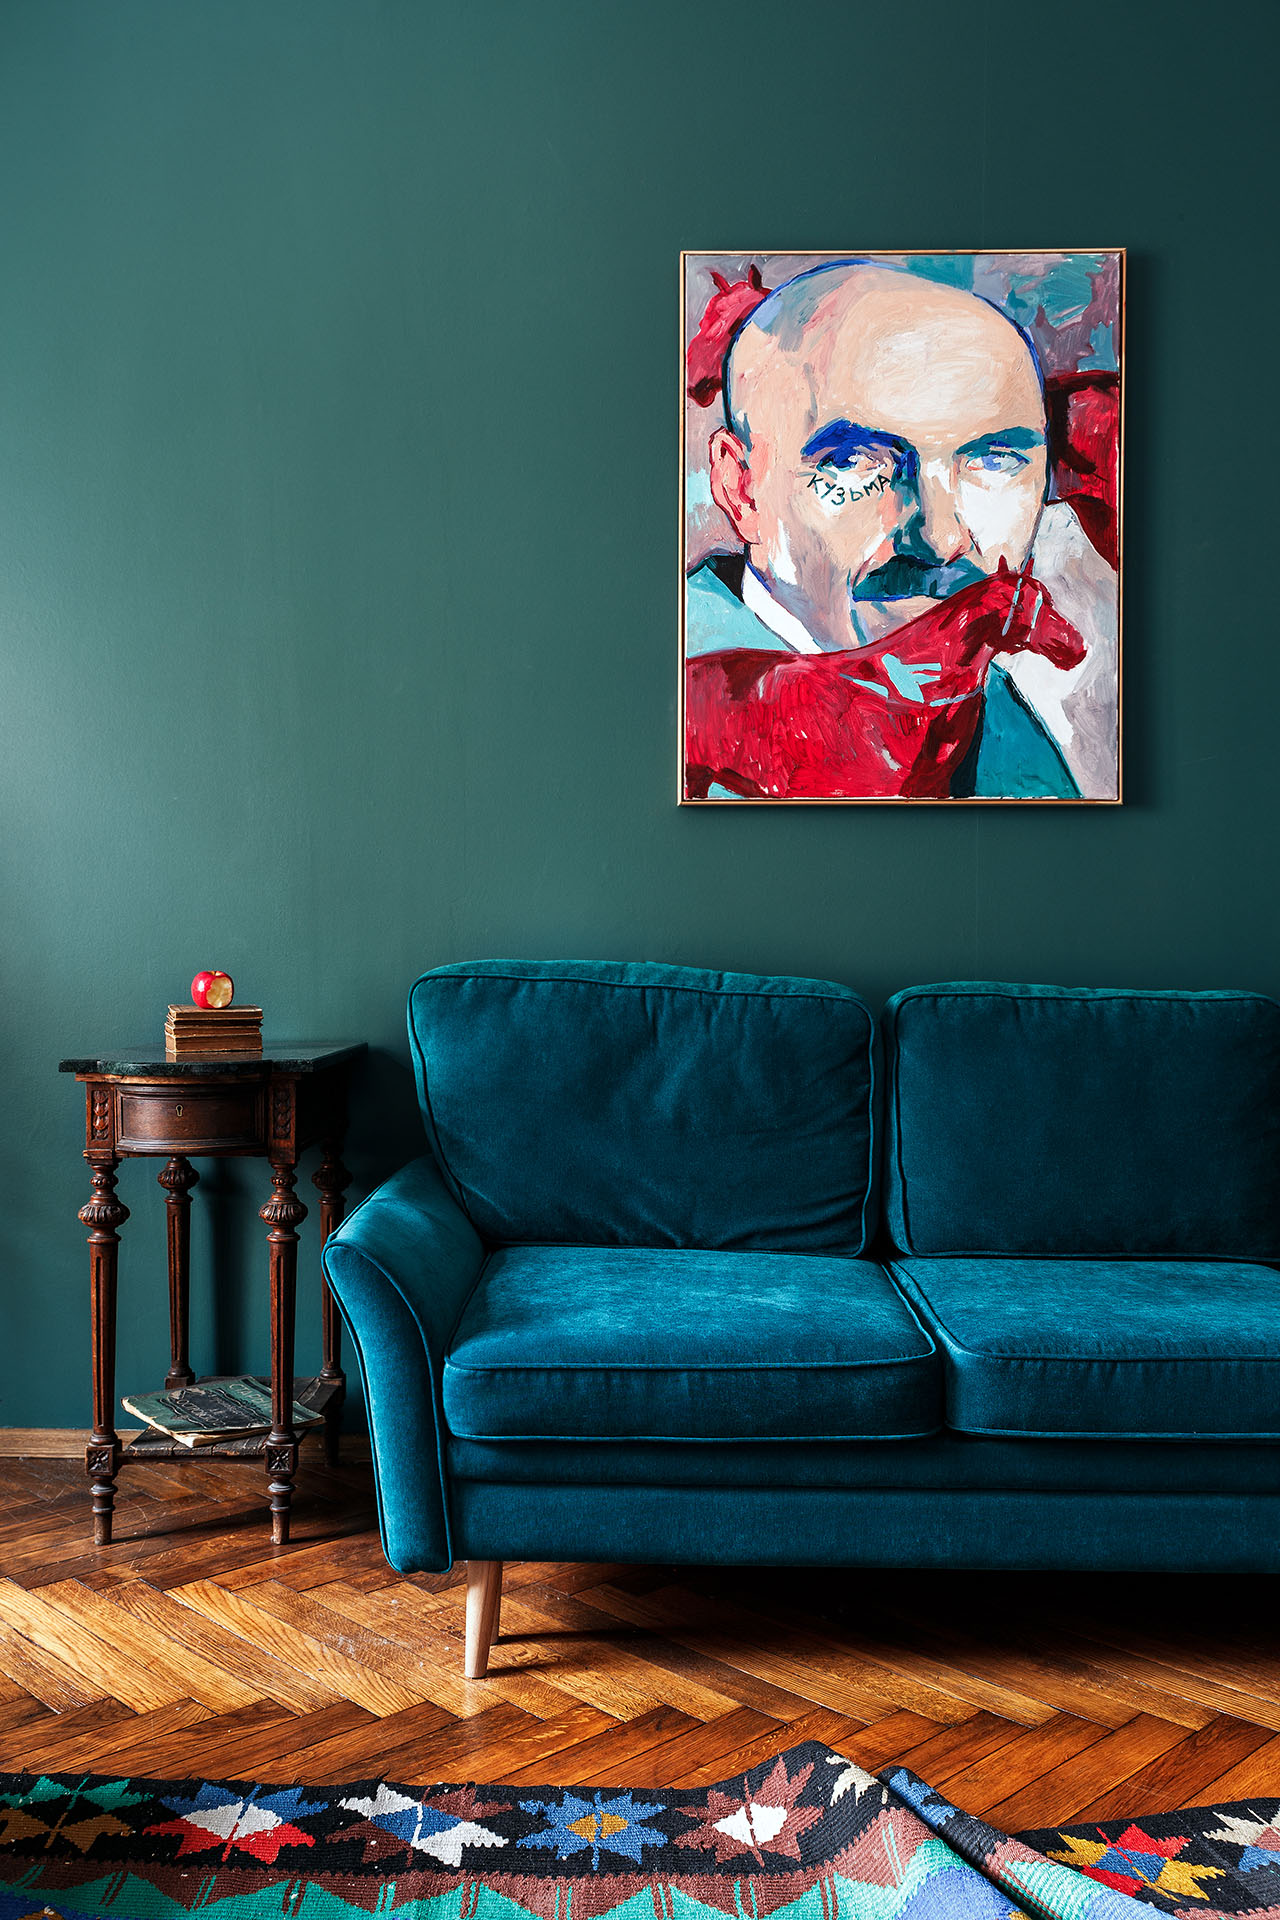 Photo by Anton Ivanov. Styling by Anna Koroleva. Painting by Tima Illarionov.